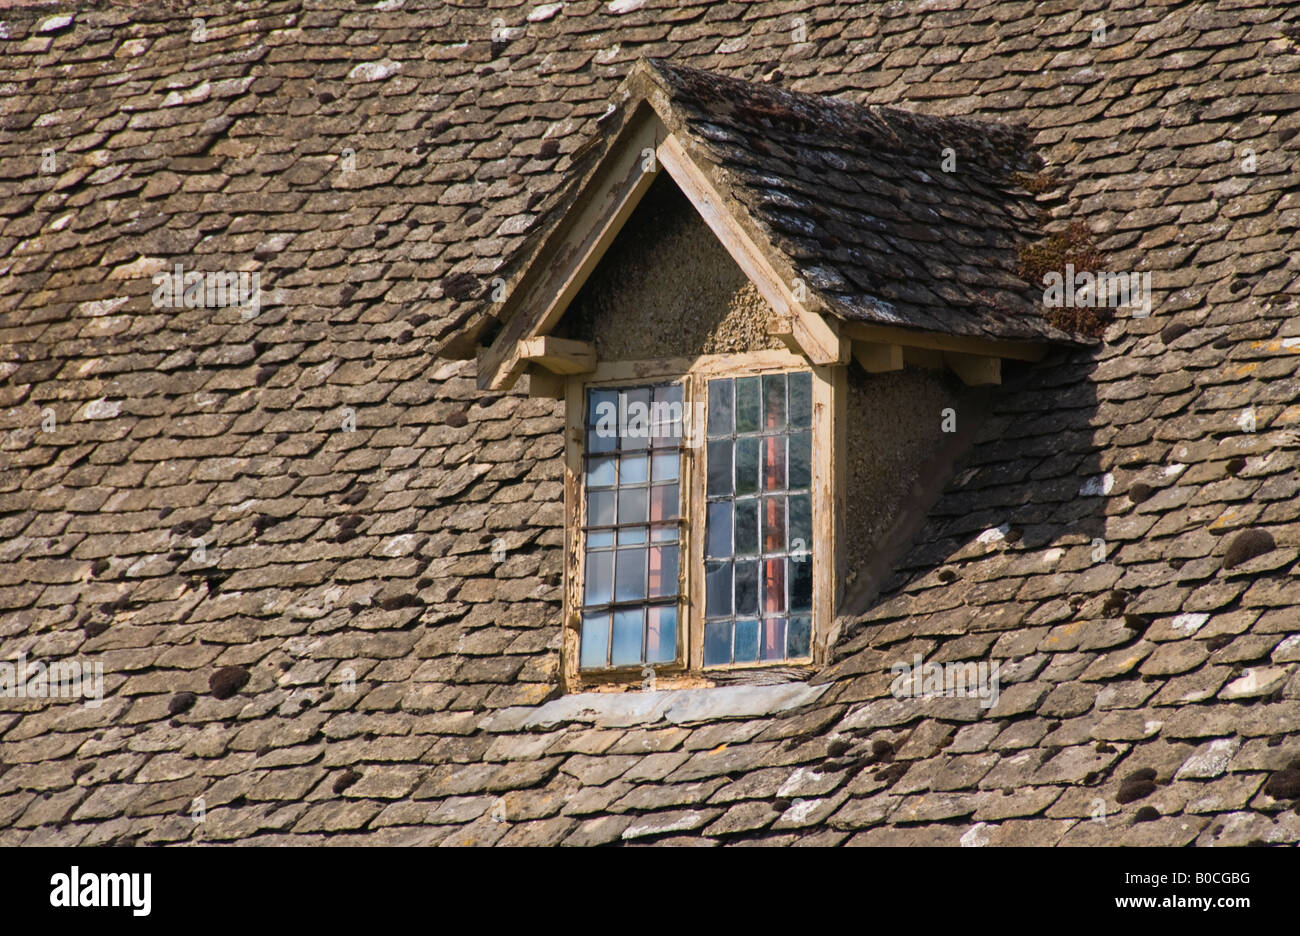 Dormer Window On Cottage With Stone Tile Roof In Village